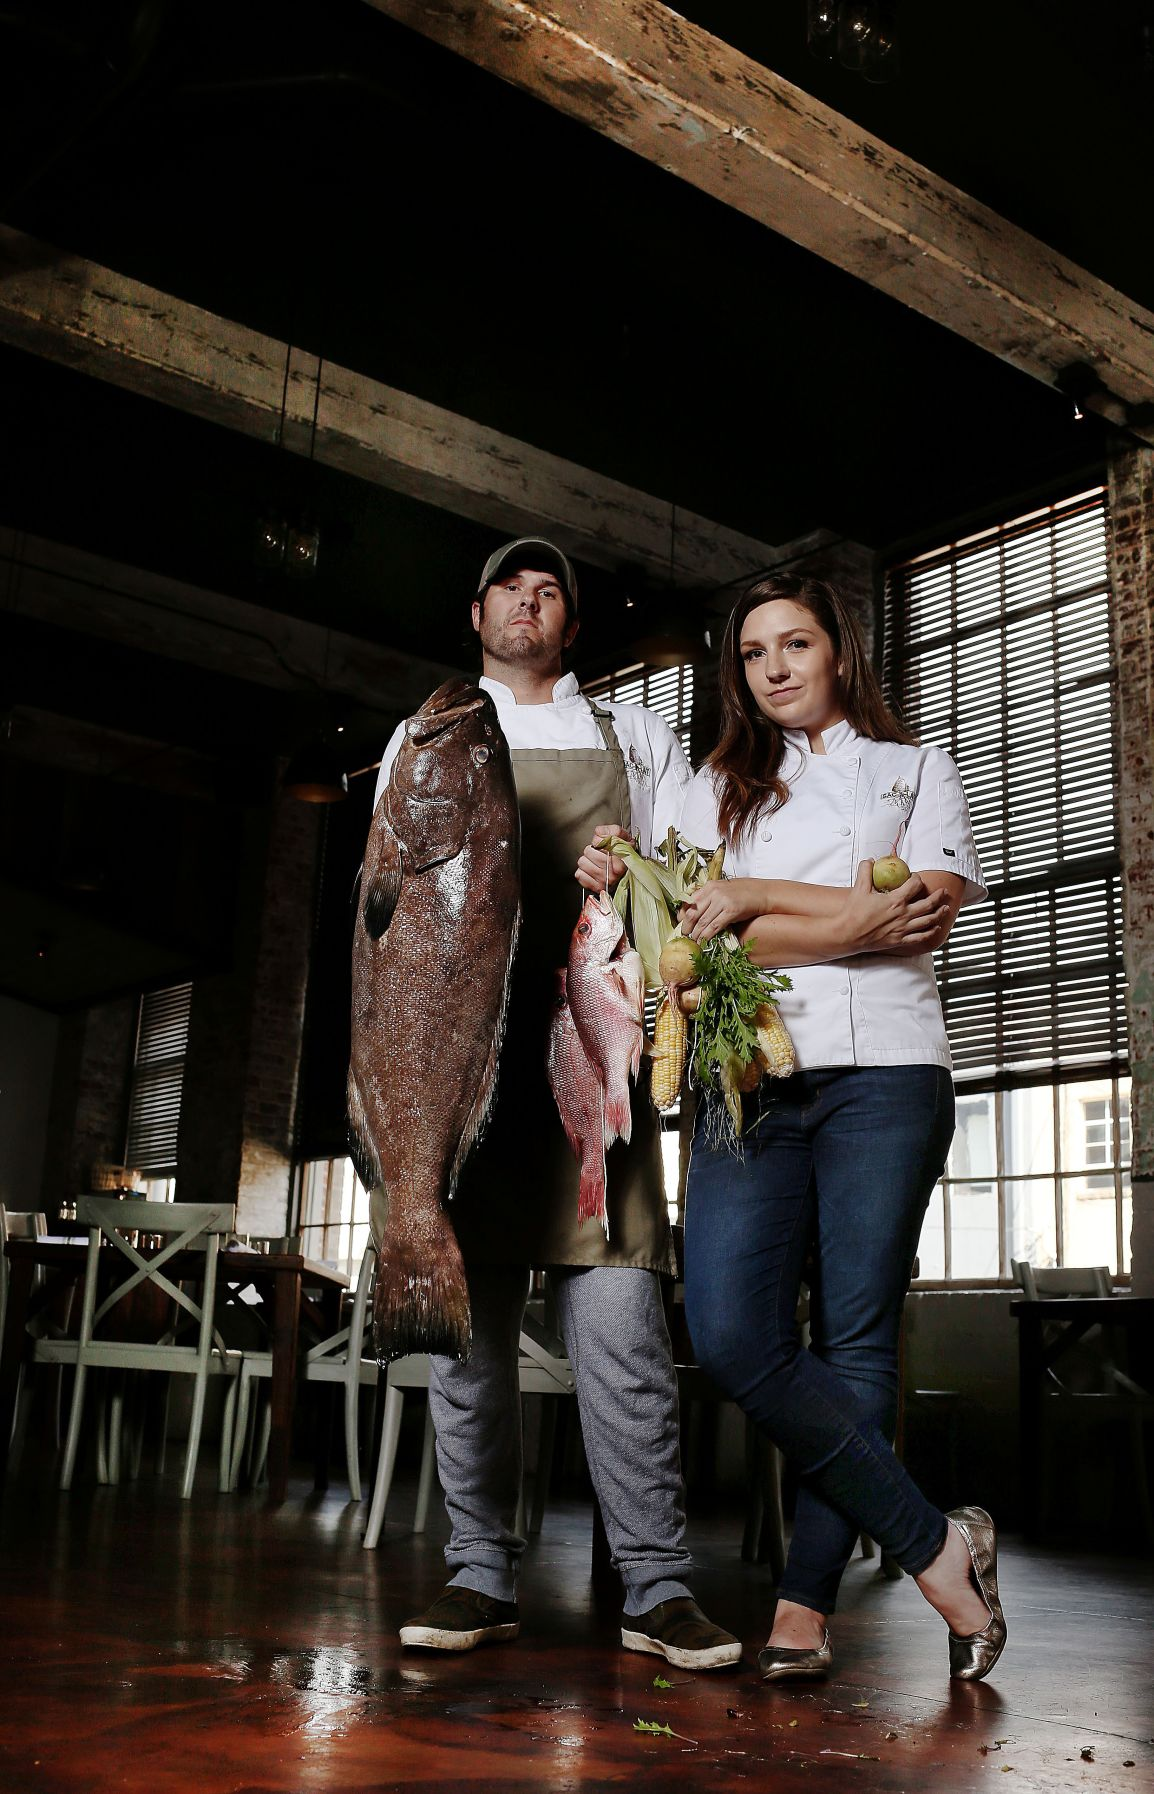 Sac-A-Lait chefs to star in new Food Network show Cajun Aces_lowres